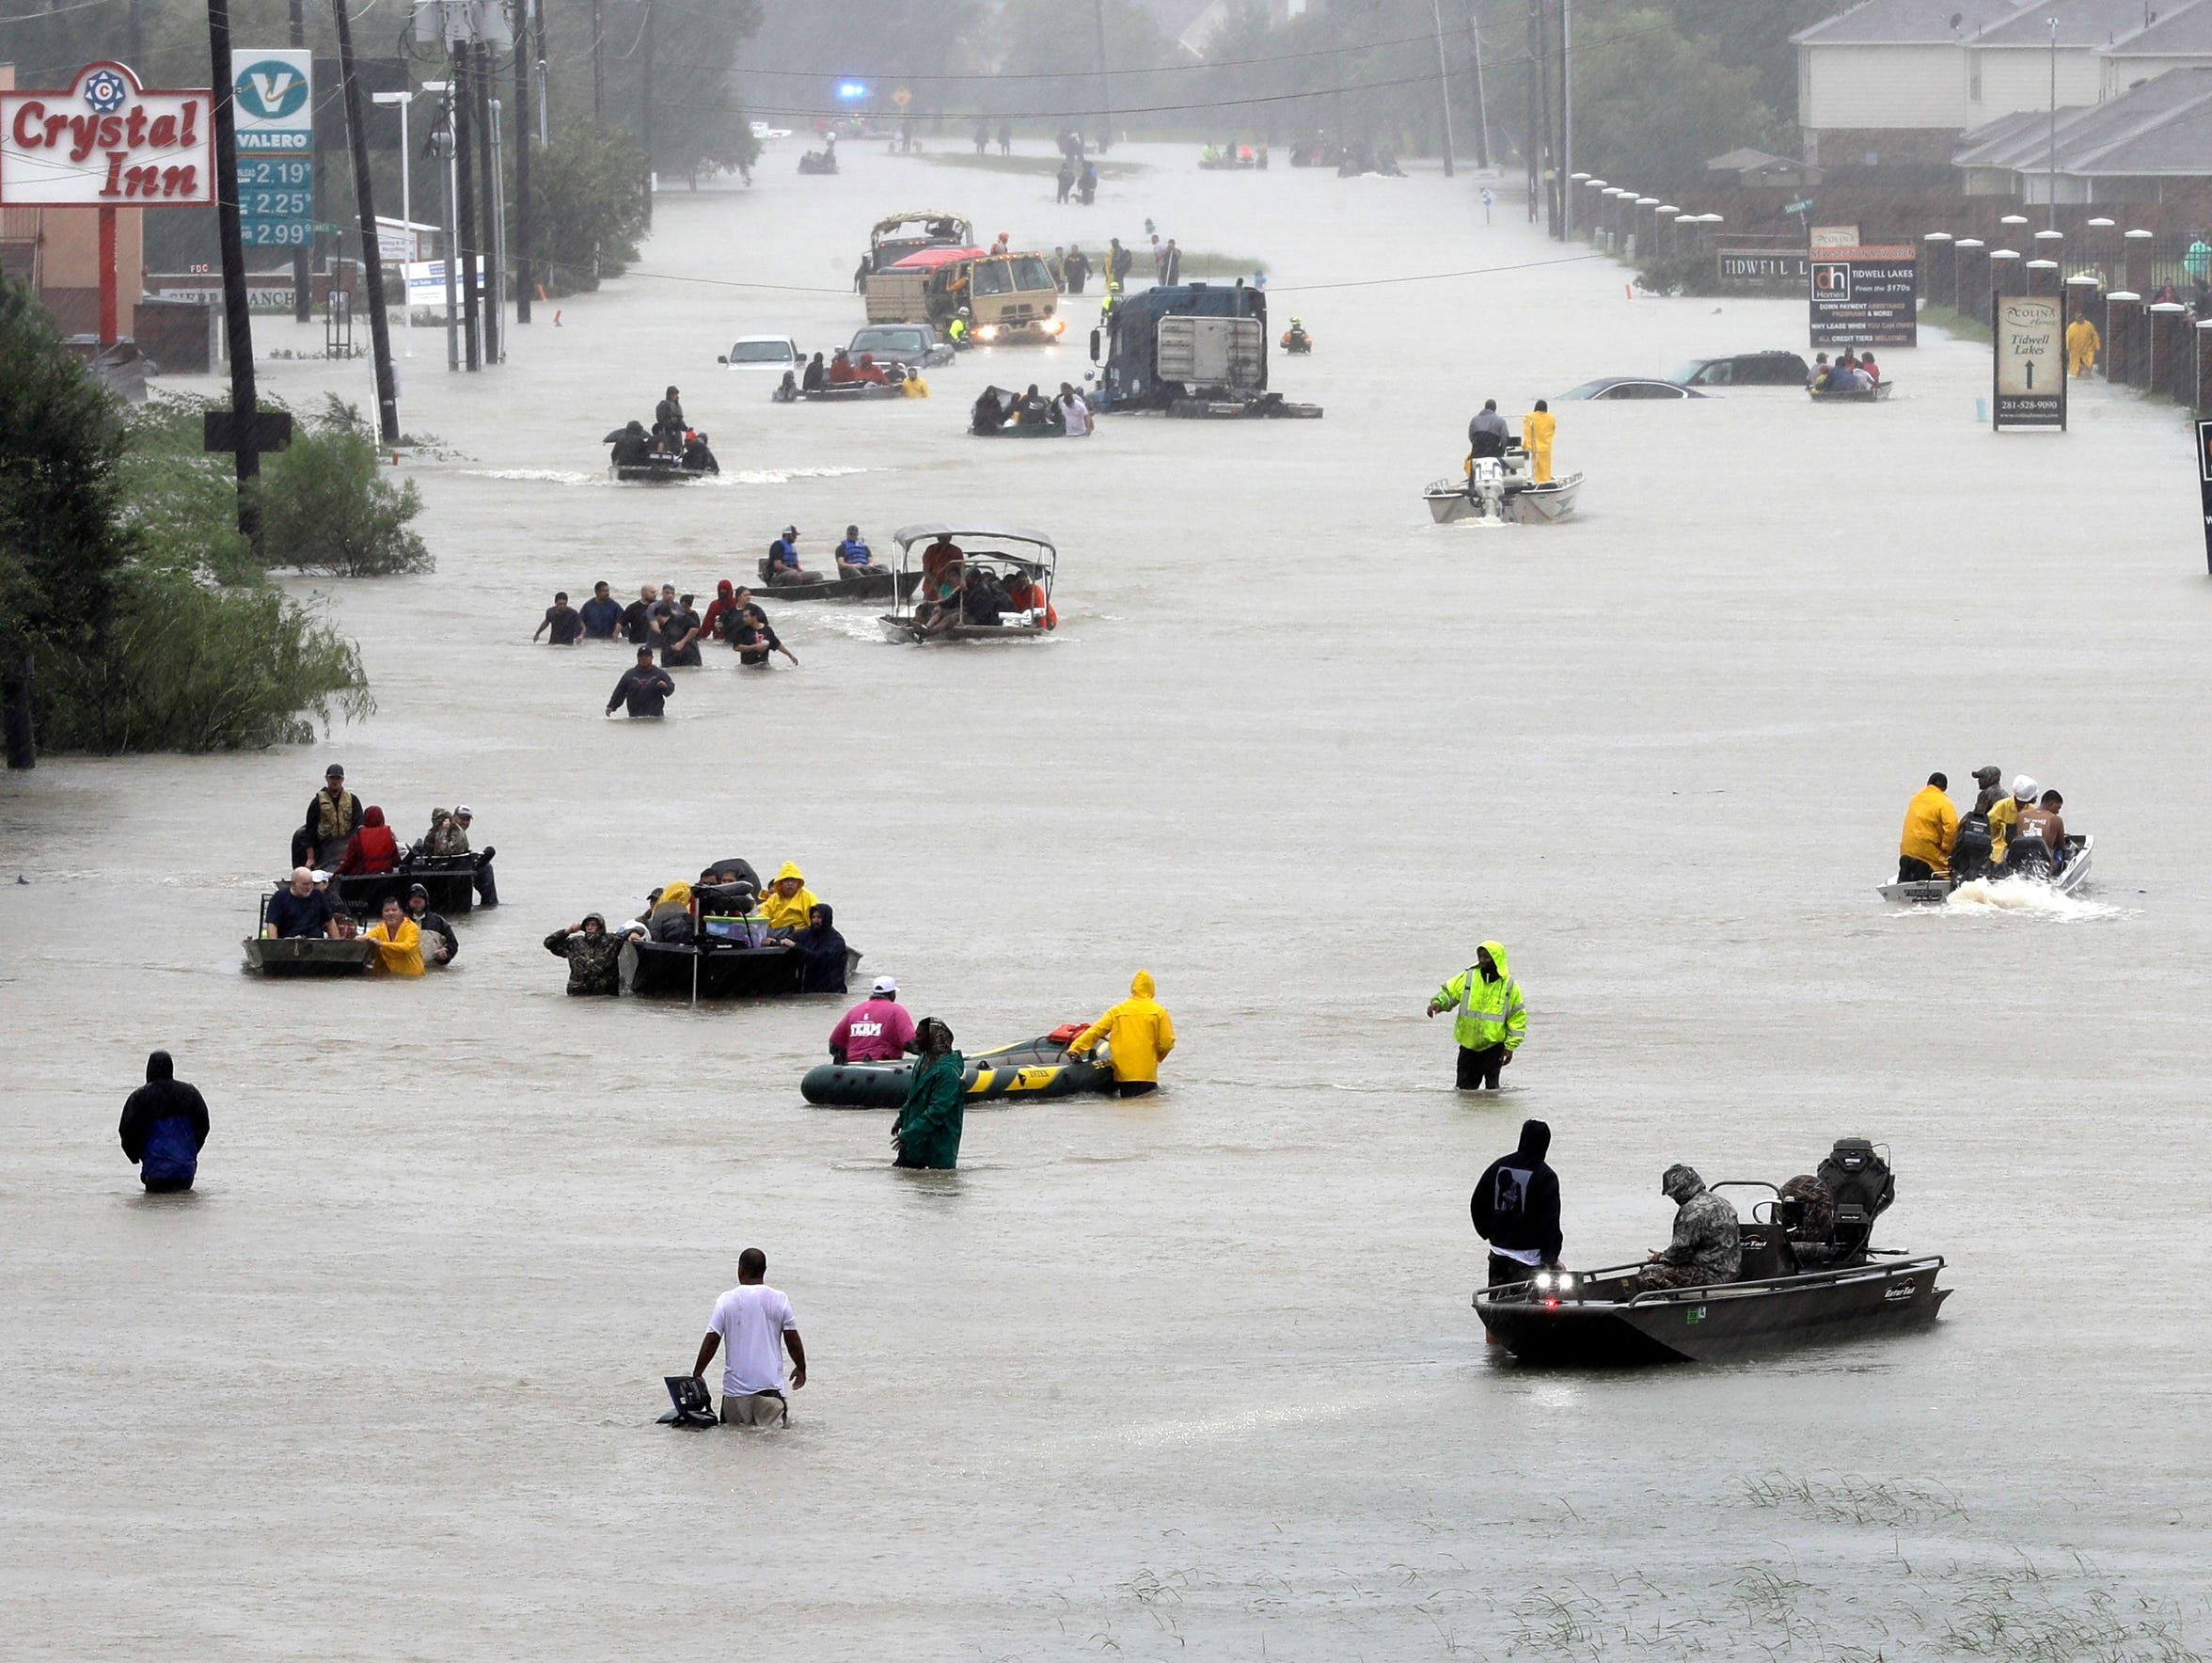 In this Aug. 28, 2017 file photo, rescuers help evacuate Houston residents from flooded areas inundated by Hurricane Harvey's rains. Corpus Christi was spared by the storm, but experts say without proper planning the city could face the same situation in the next.